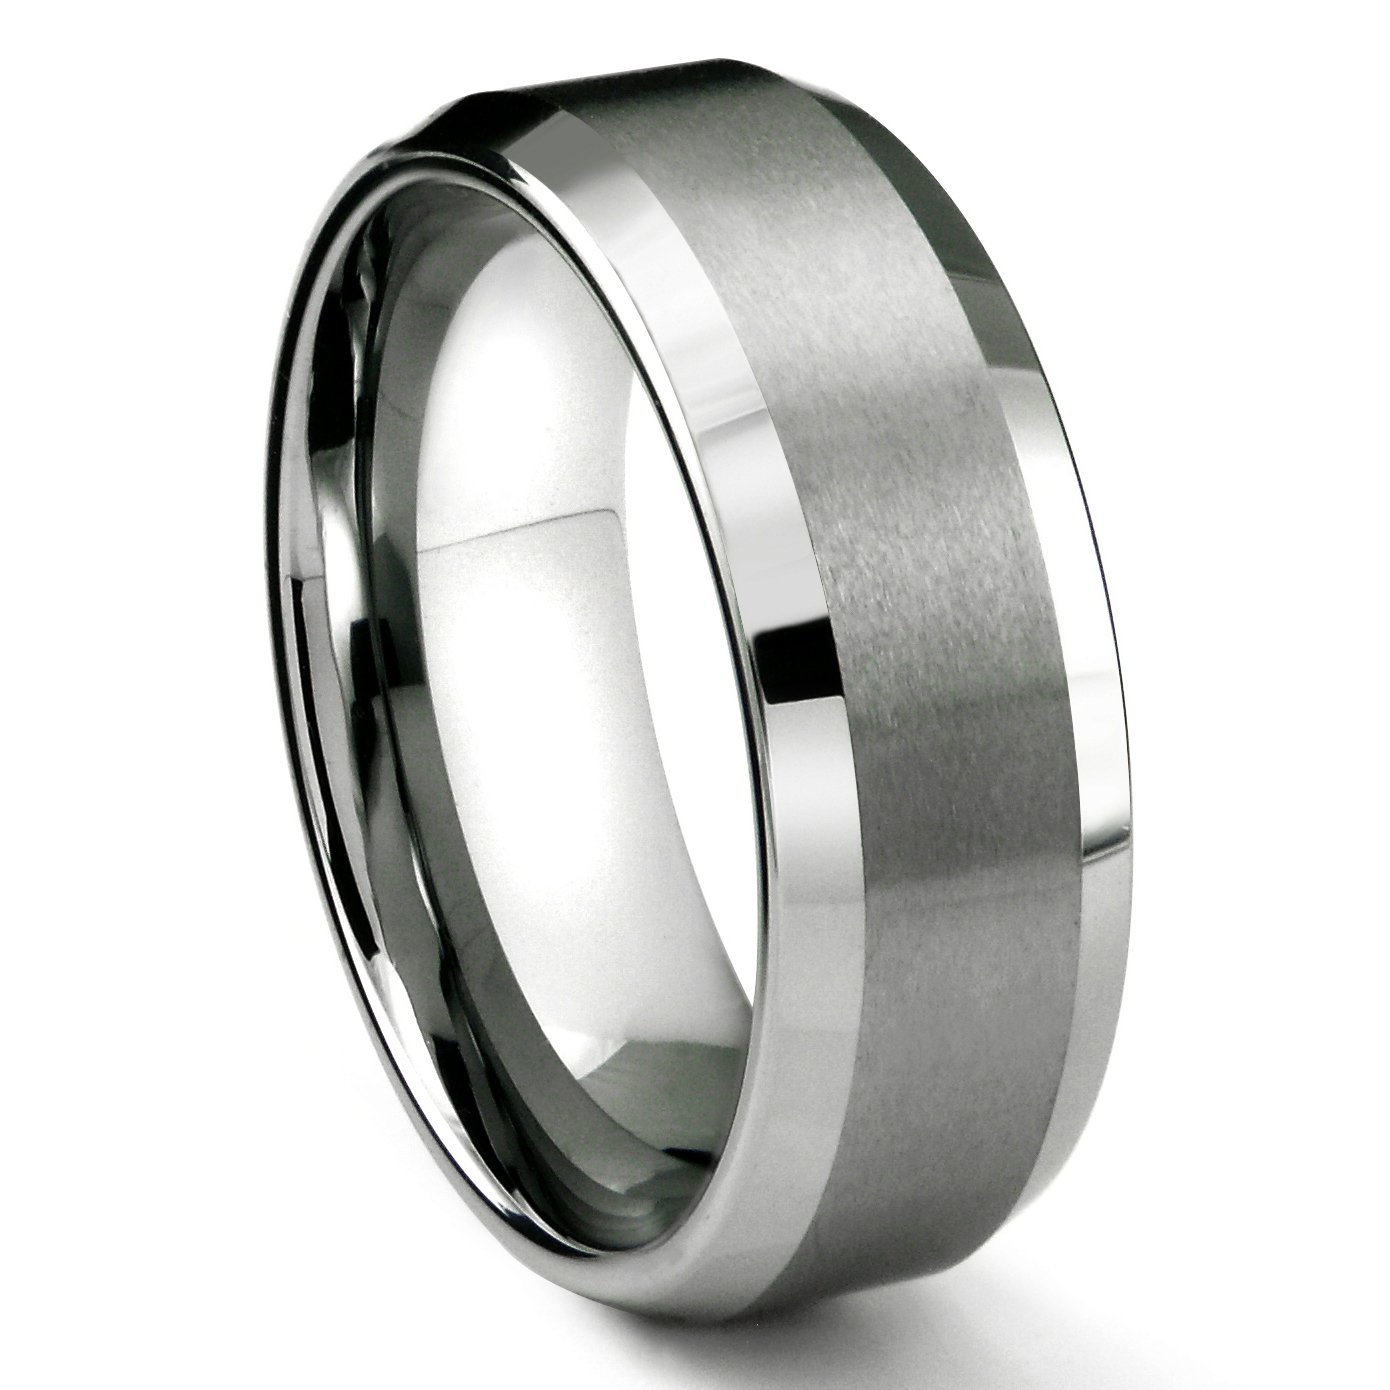 8mm Tungsten Metal Men's Wedding Band Ring In Fort Fit And Matte Finish Size 716 Amazon: Tungsten 8mm Wedding Band At Websimilar.org